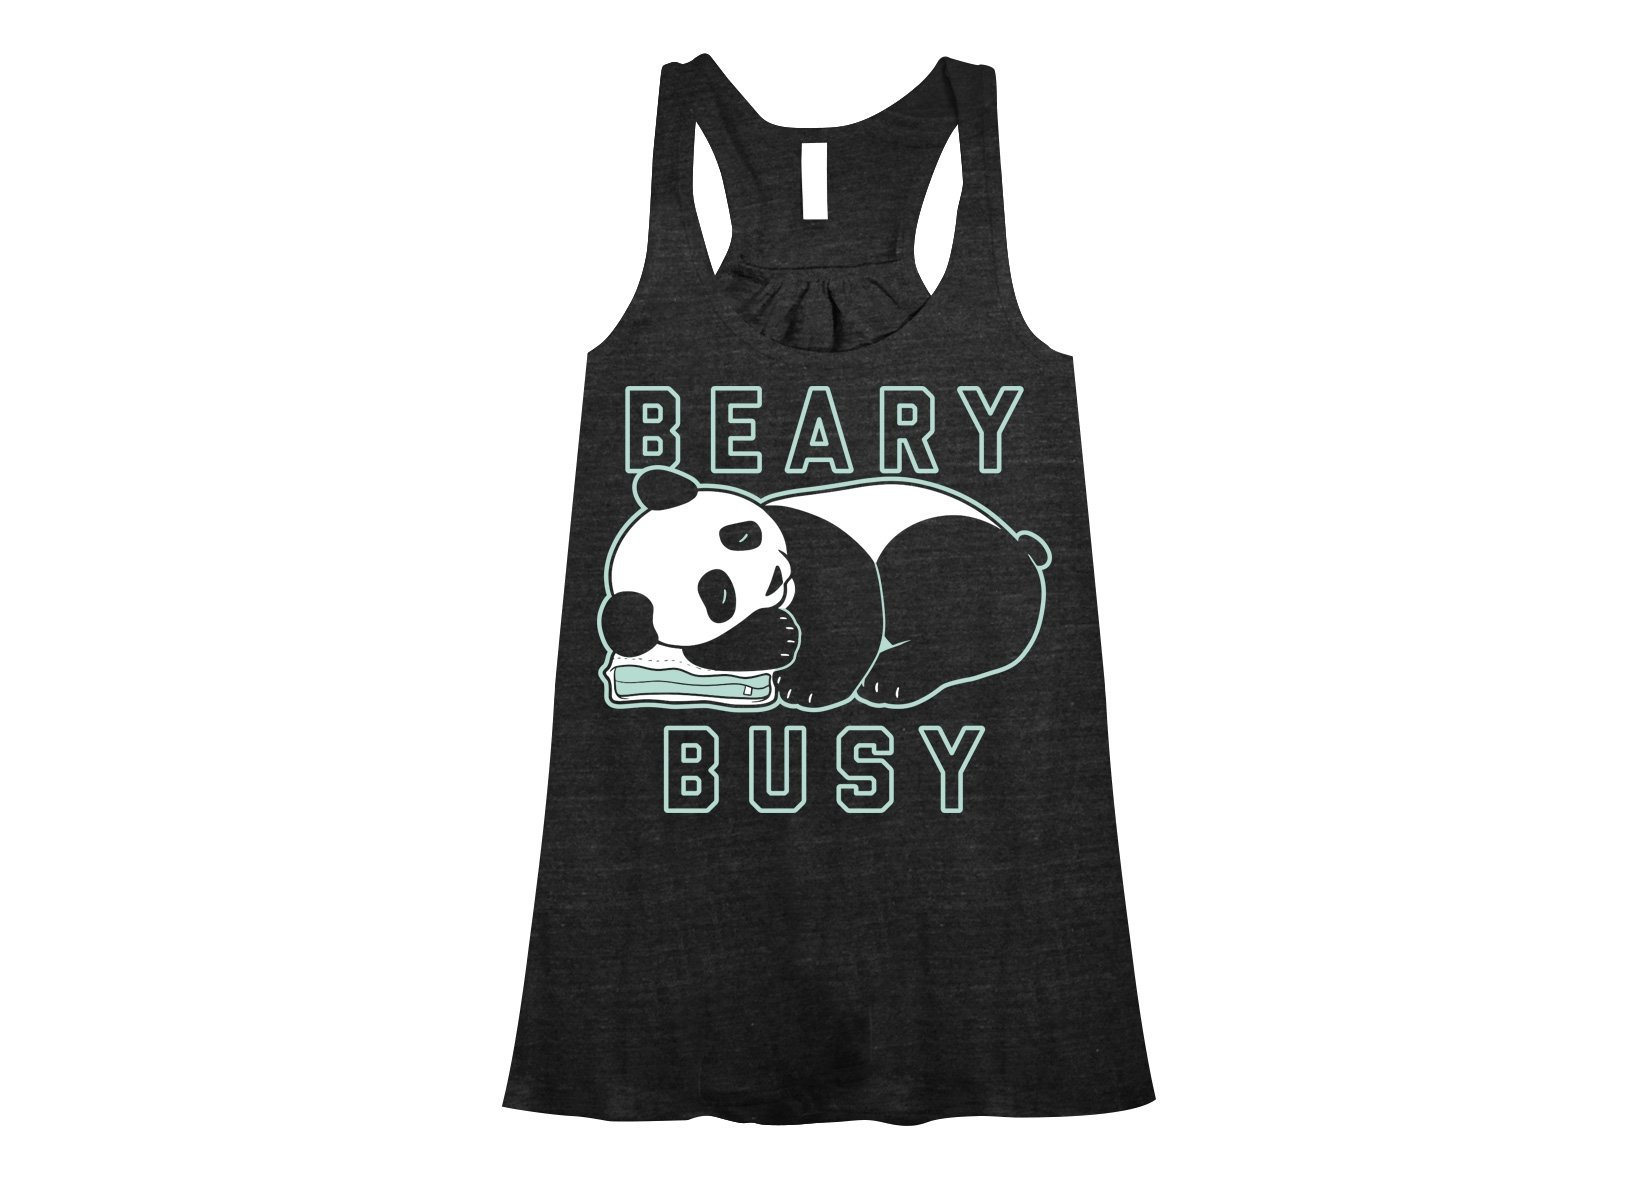 Beary Busy on Womens Tanks T-Shirt